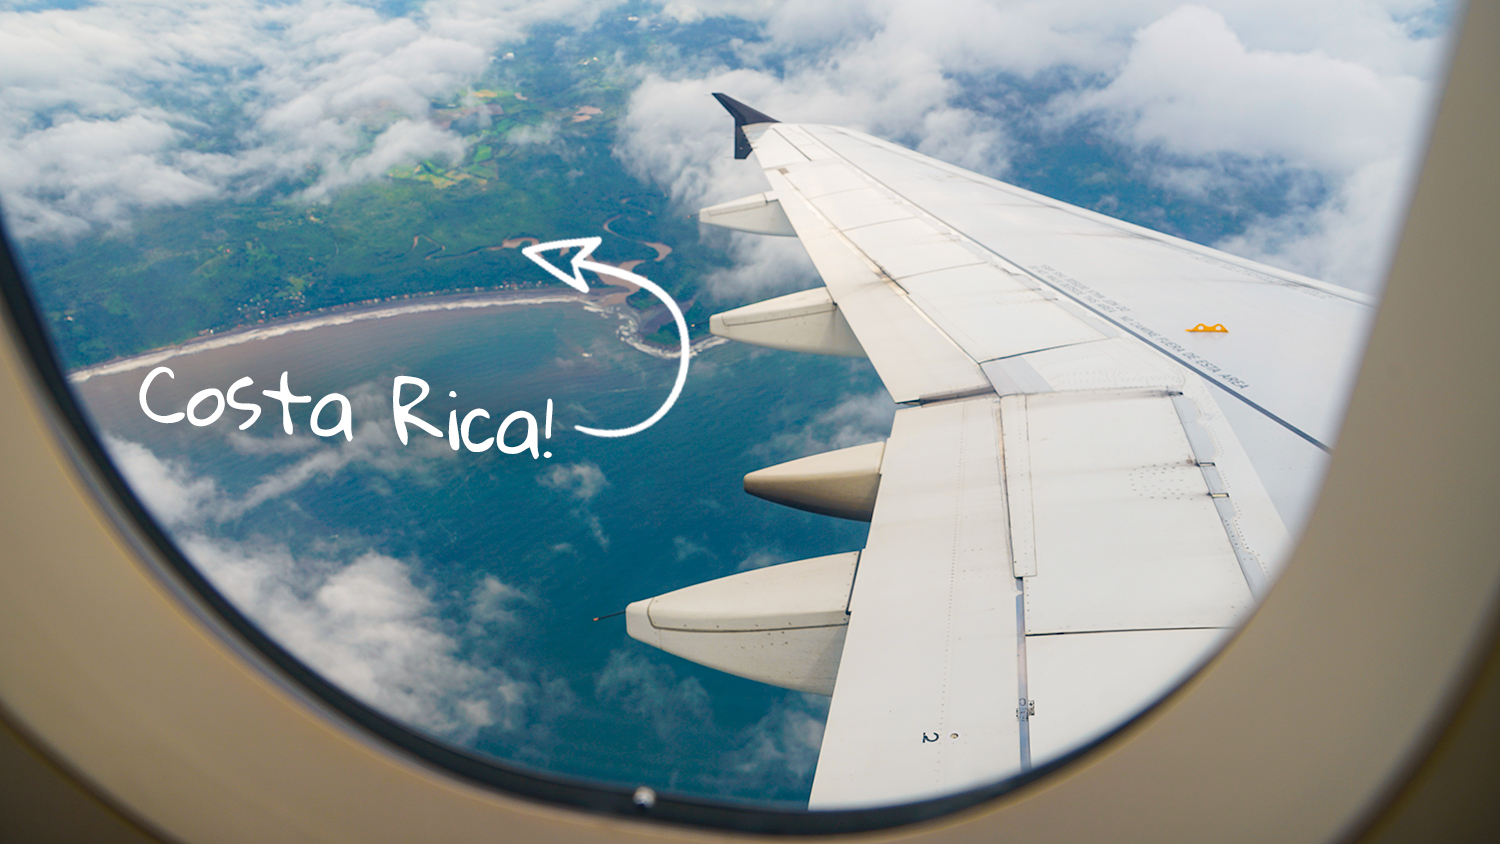 We're Flying to COSTA RICA! - Travel Vlog